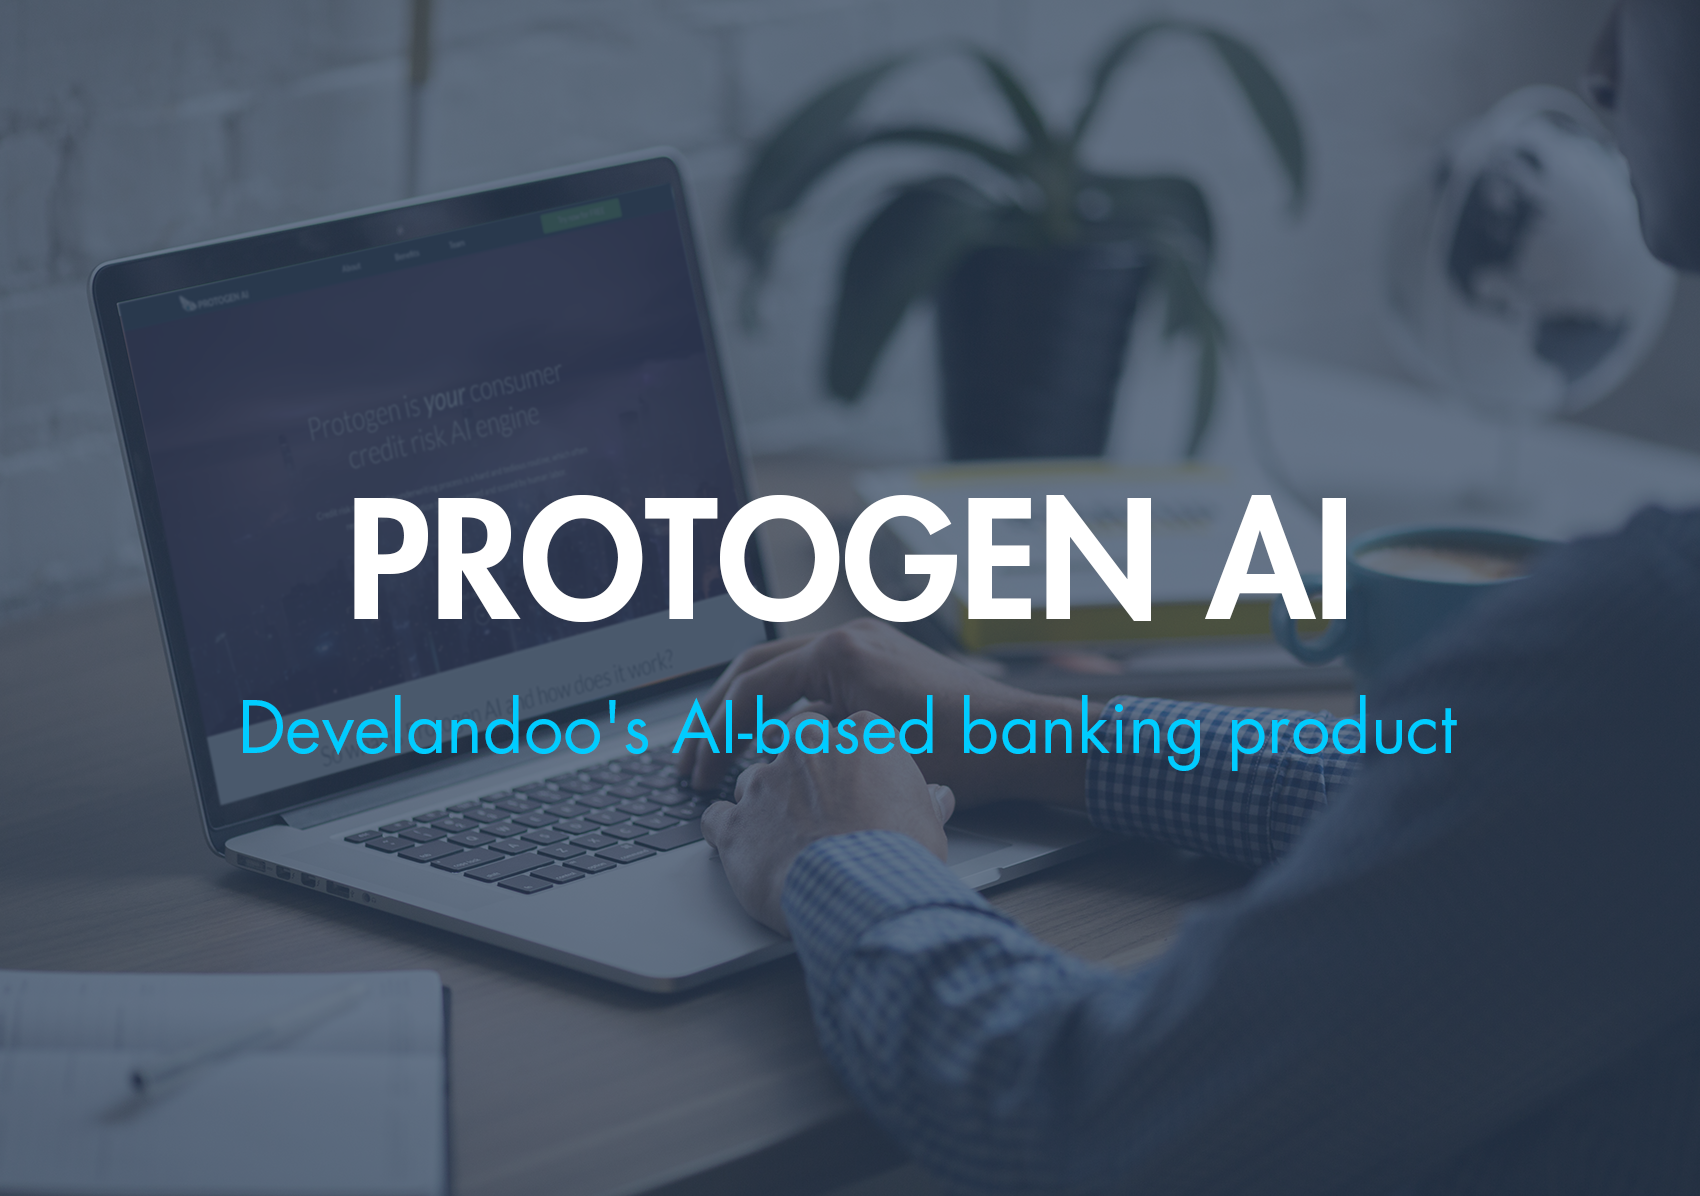 Develandoo Has Developed an AI Banking Product Capable of Building Fast, Accurate and Interpretable Predictive Systems